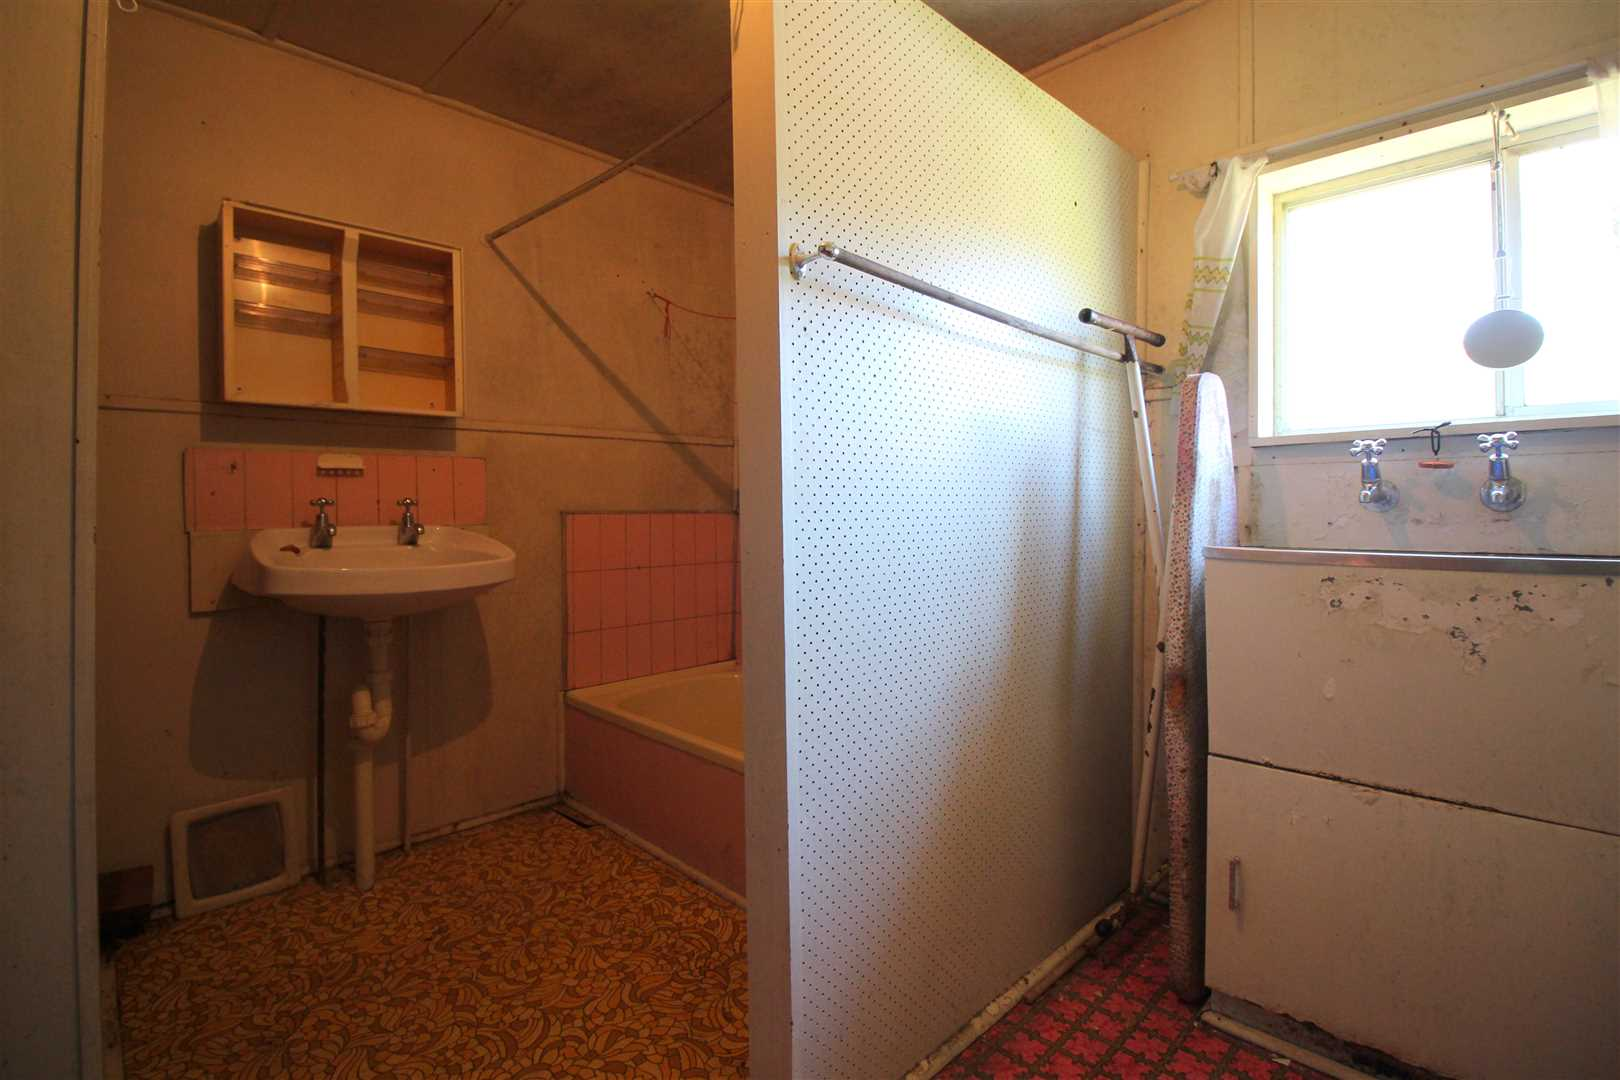 Bathroom/Launry